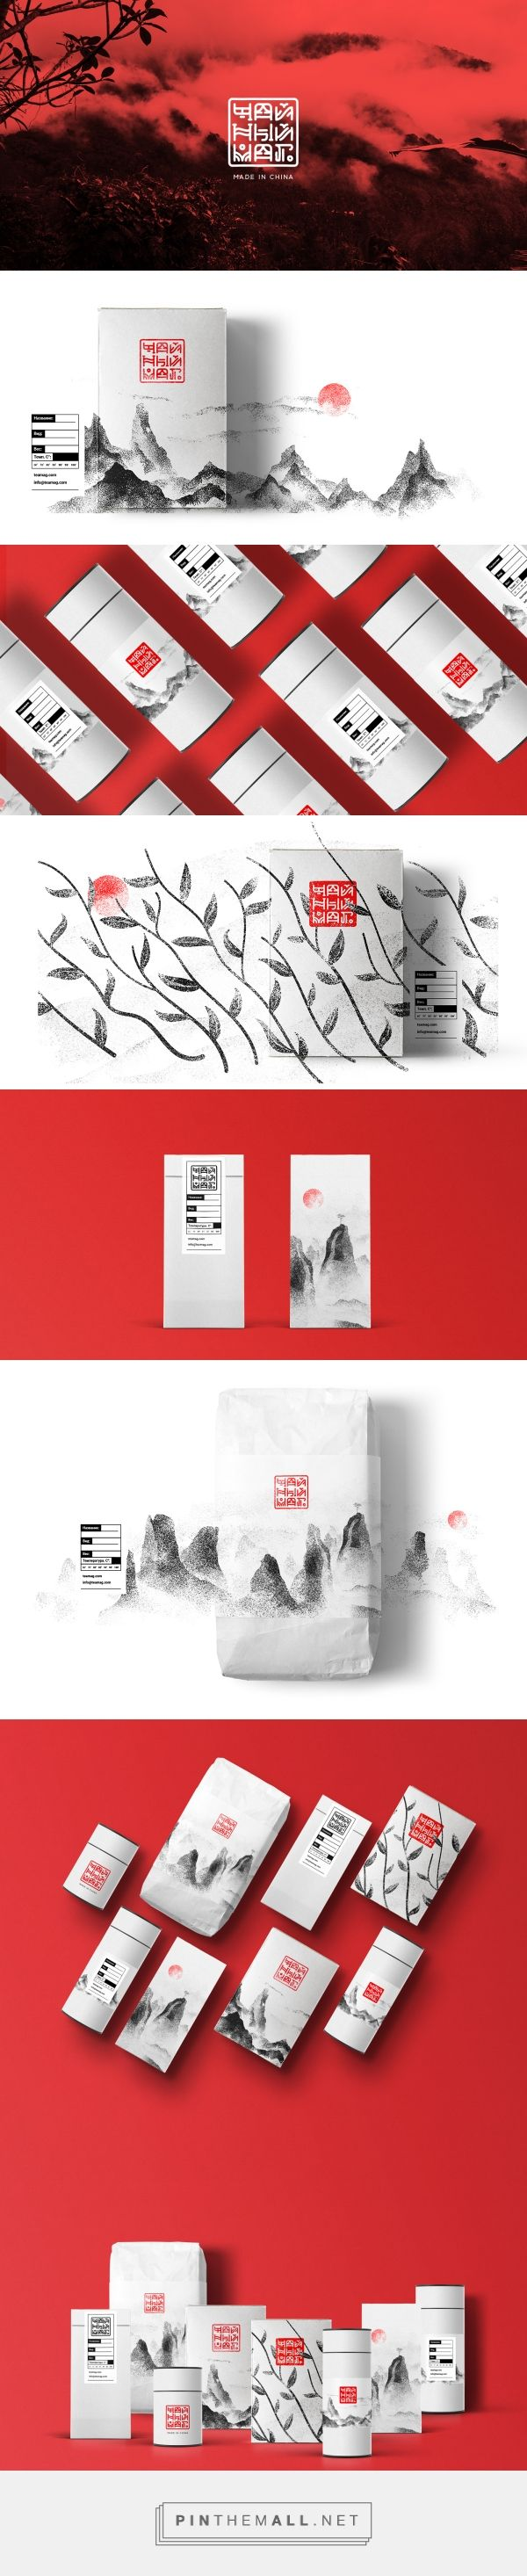 ChainiyMag Online Tea Store Packaging by Kirill Moskvich | Fivestar Branding Agency – Design and Branding Agency & Curated Inspiration Gallery